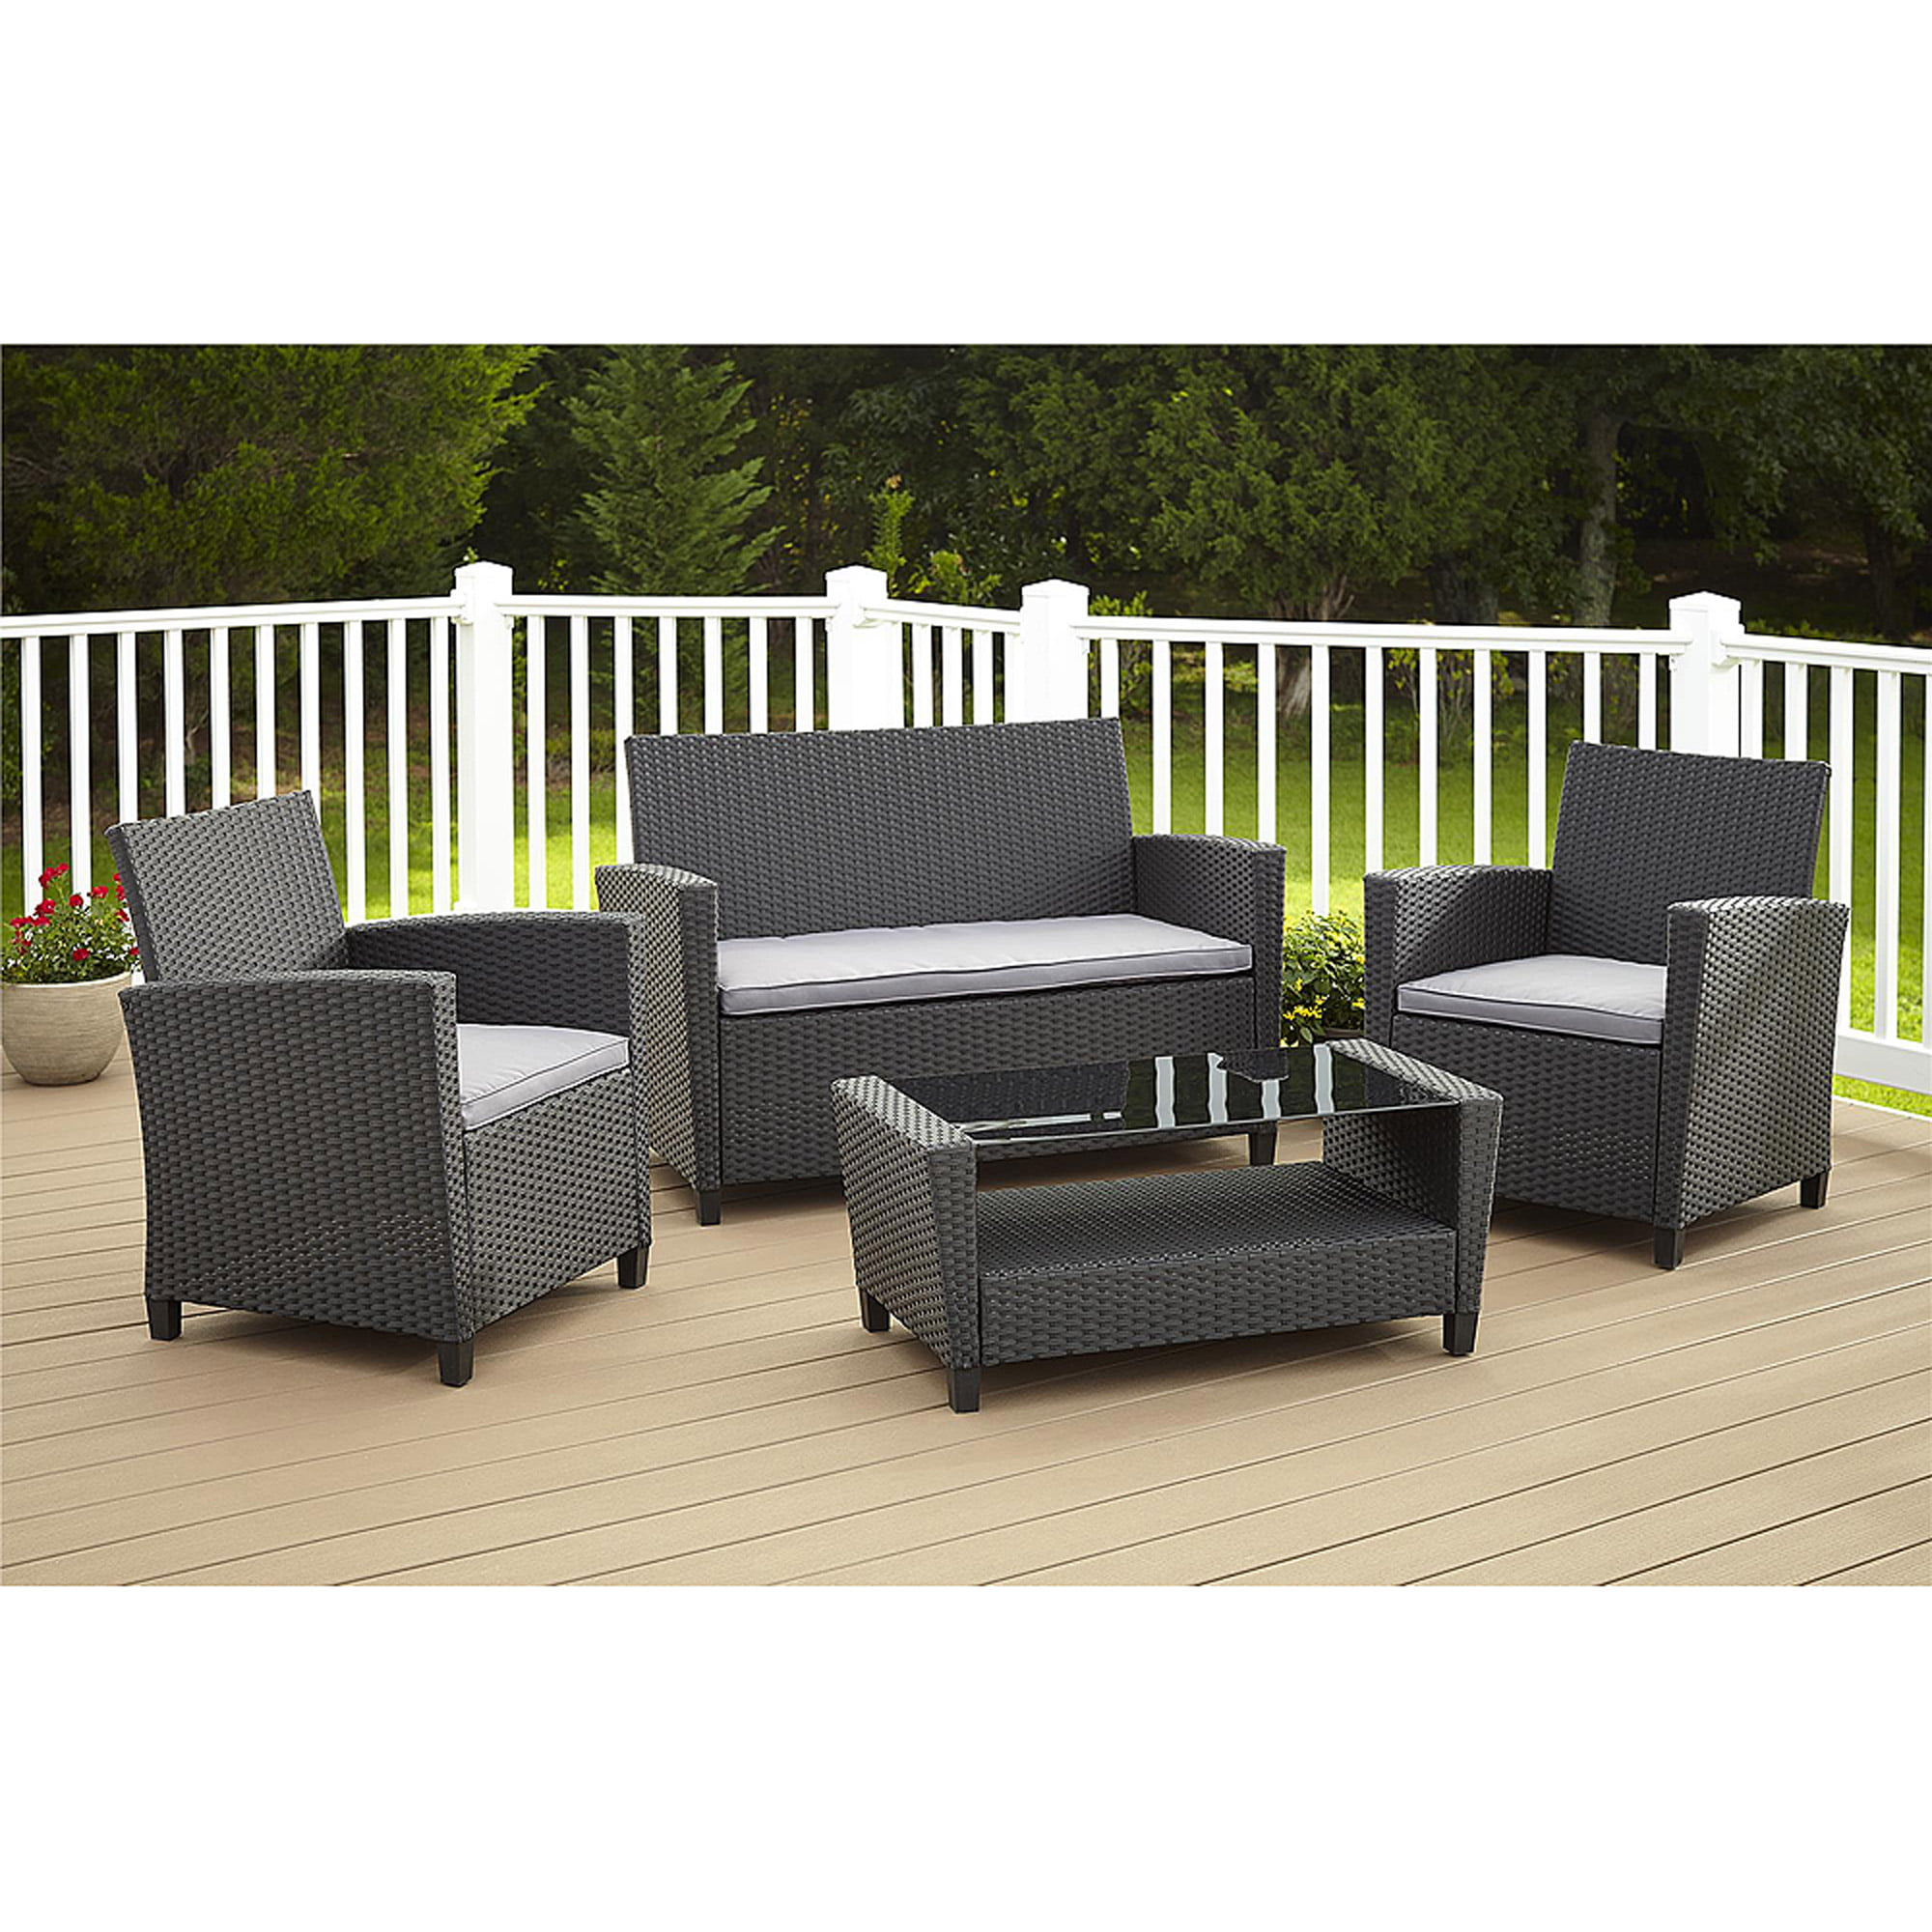 Cosco Outdoor Malmo 4 Piece Resin Wicker Patio Conversation Set Com